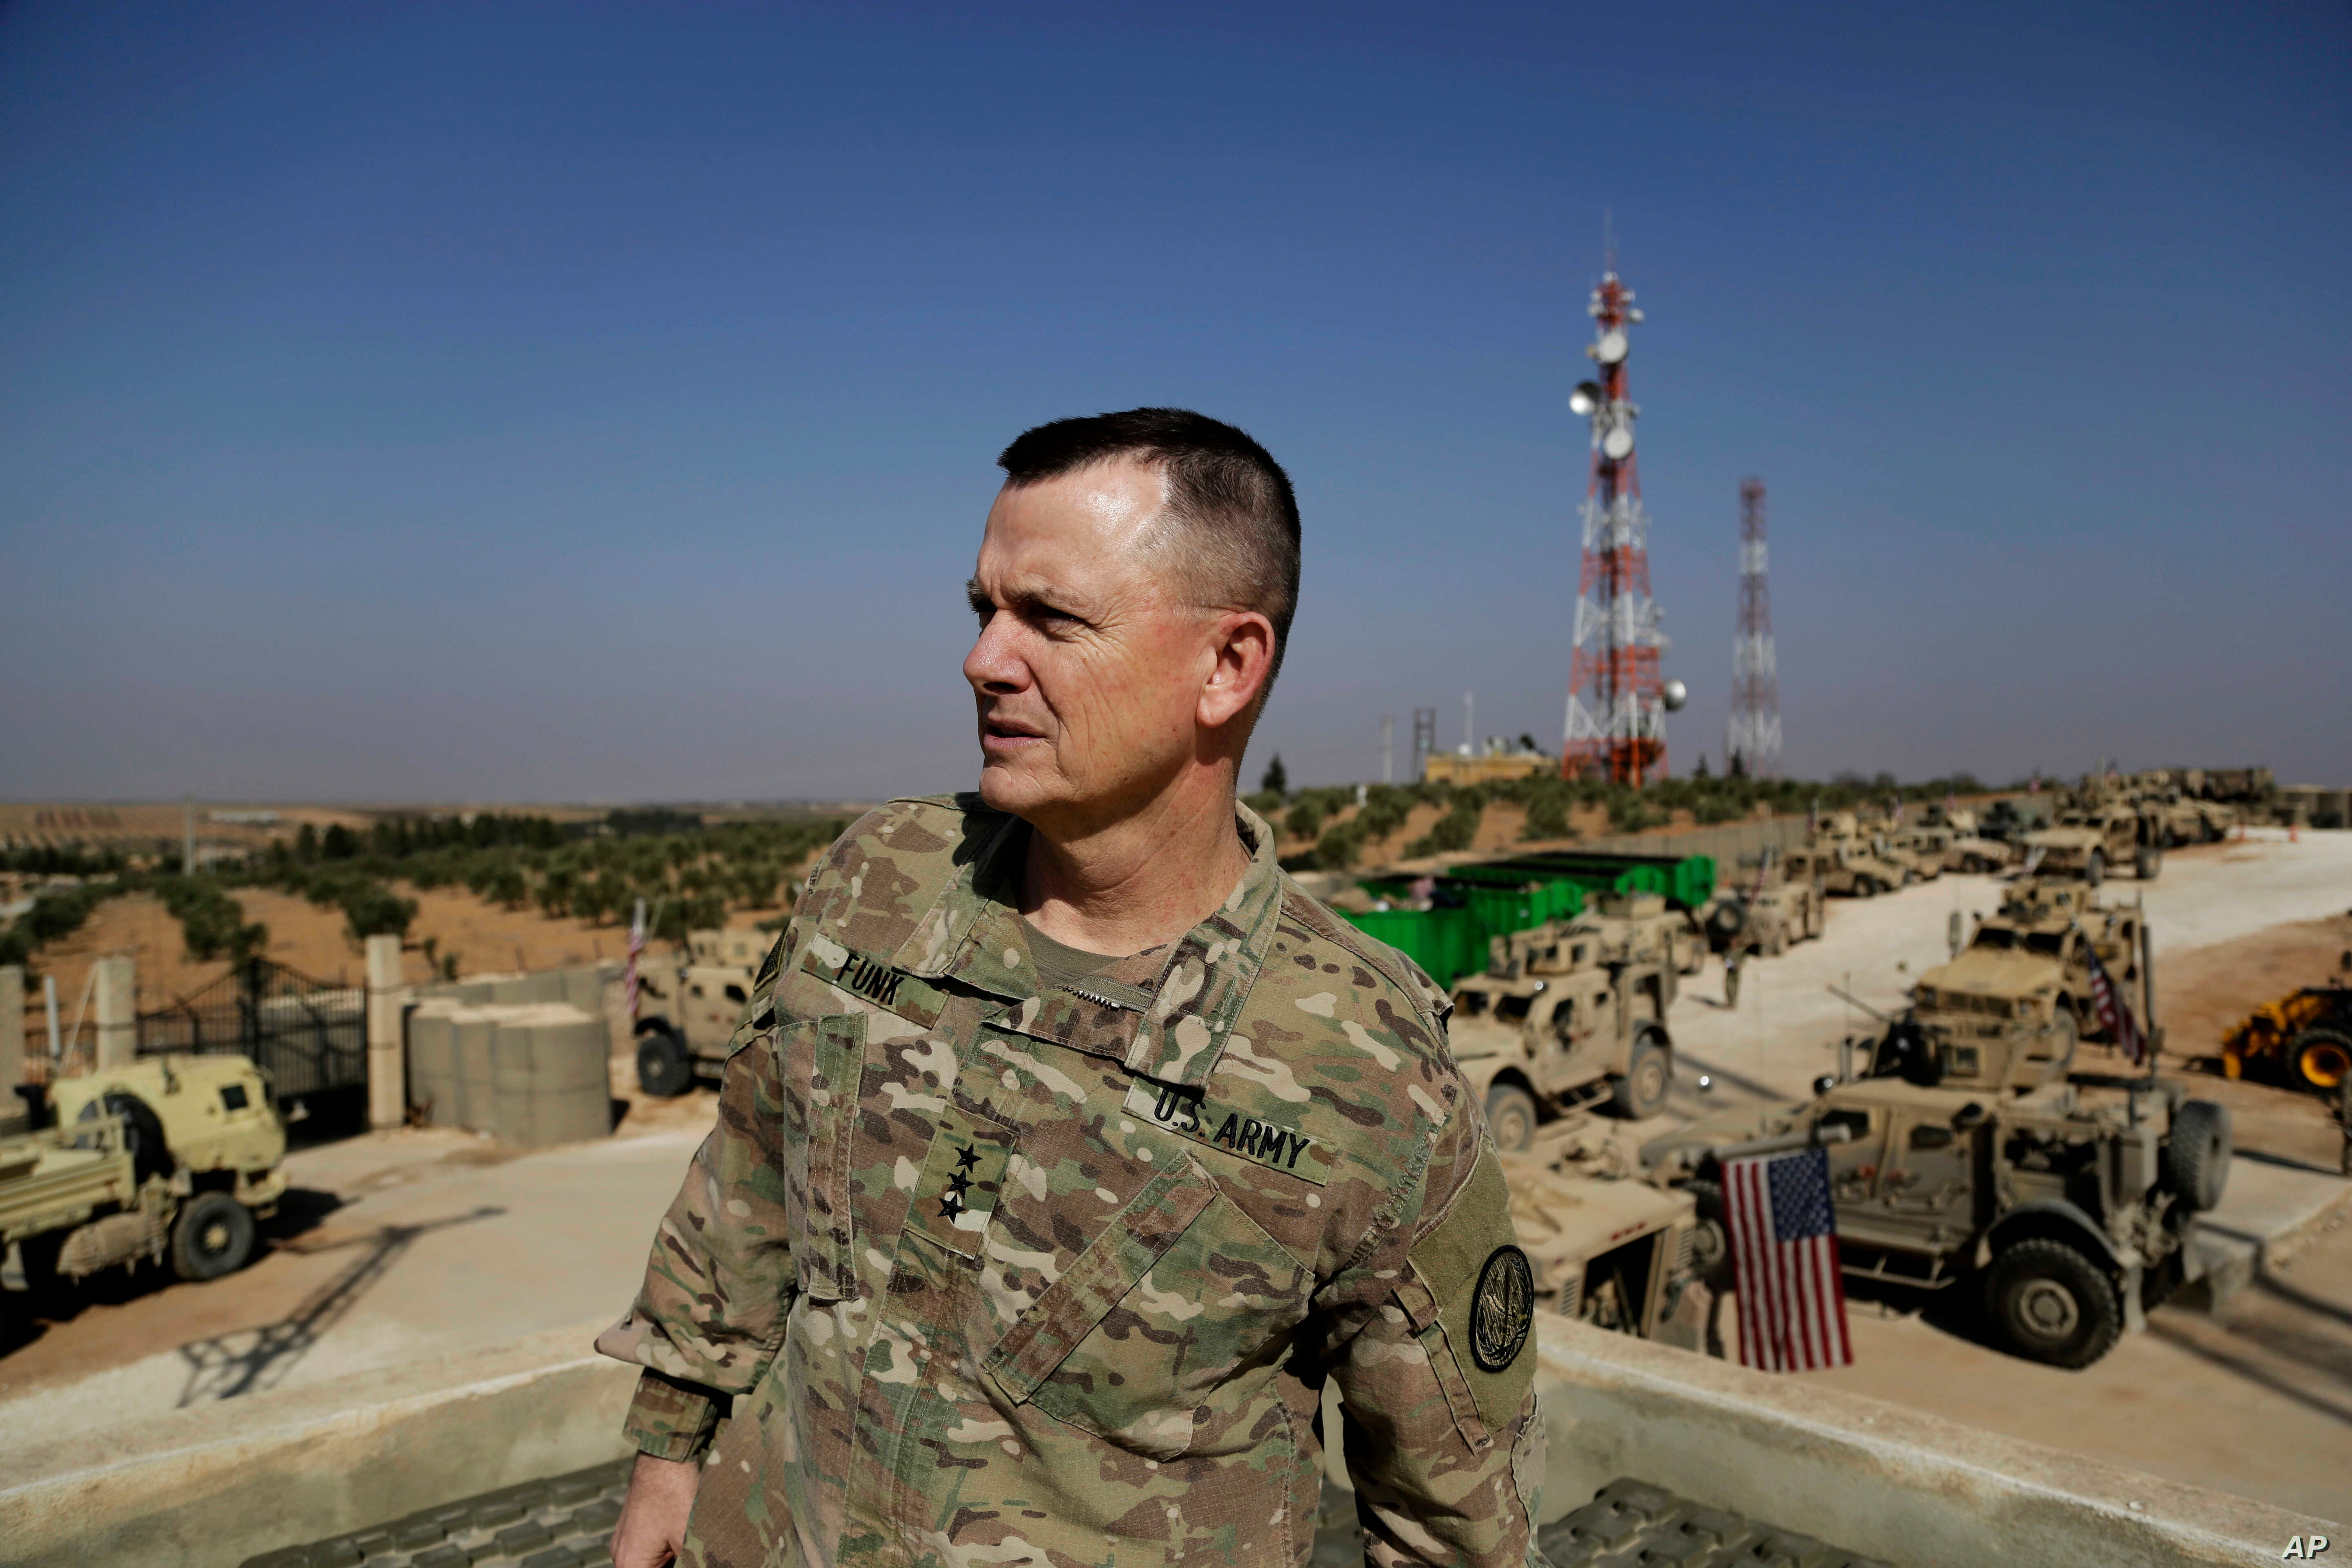 U.S. Army Lt. Gen. Paul E. Funk speaks to the Associated Press at an American outpost in the northern Kurdish town of Manbij, Syria, Feb. 7, 2018. The top U.S. general in the coalition fighting the Islamic State group pledged American troops would re...